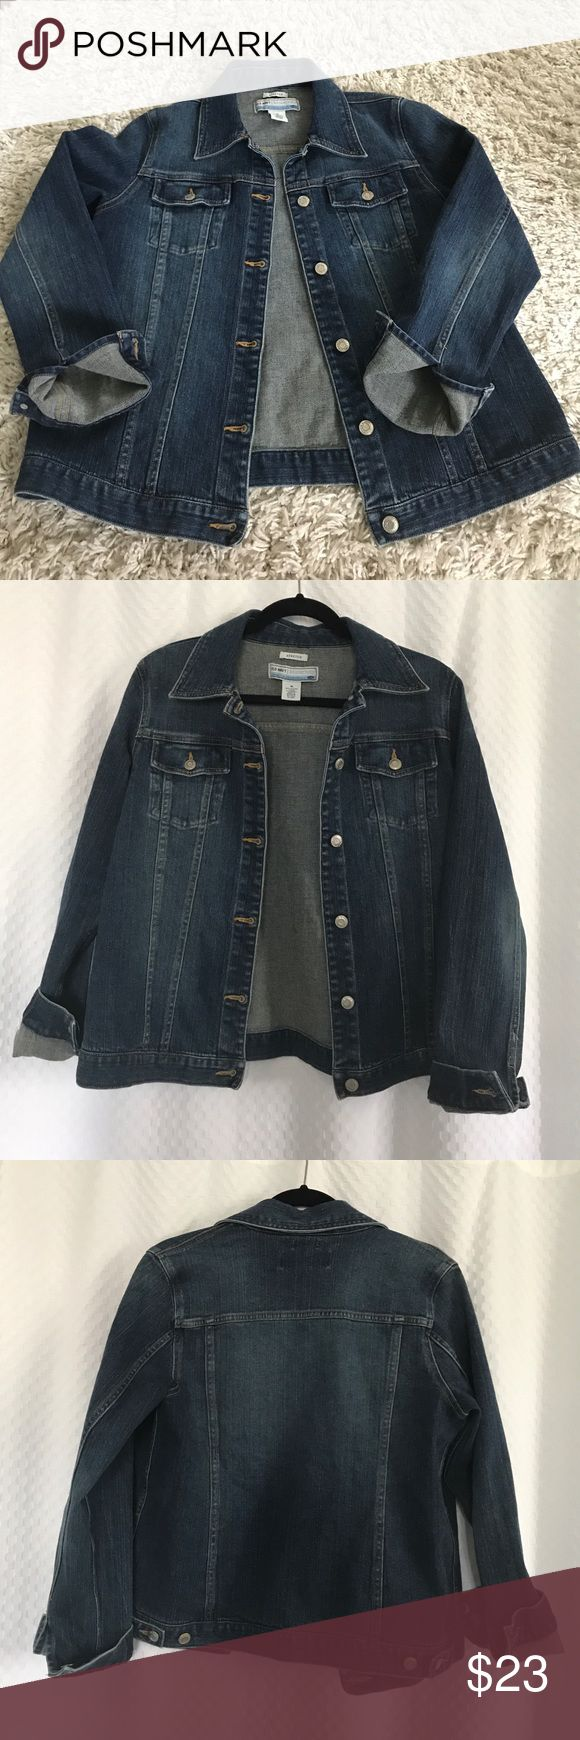 Selling this Old Navy Maternity Jean Jacket on Poshmark! My username is: cherylpudney. #shopmycloset #poshmark #fashion #shopping #style #forsale #Old Navy #Jackets & Blazers